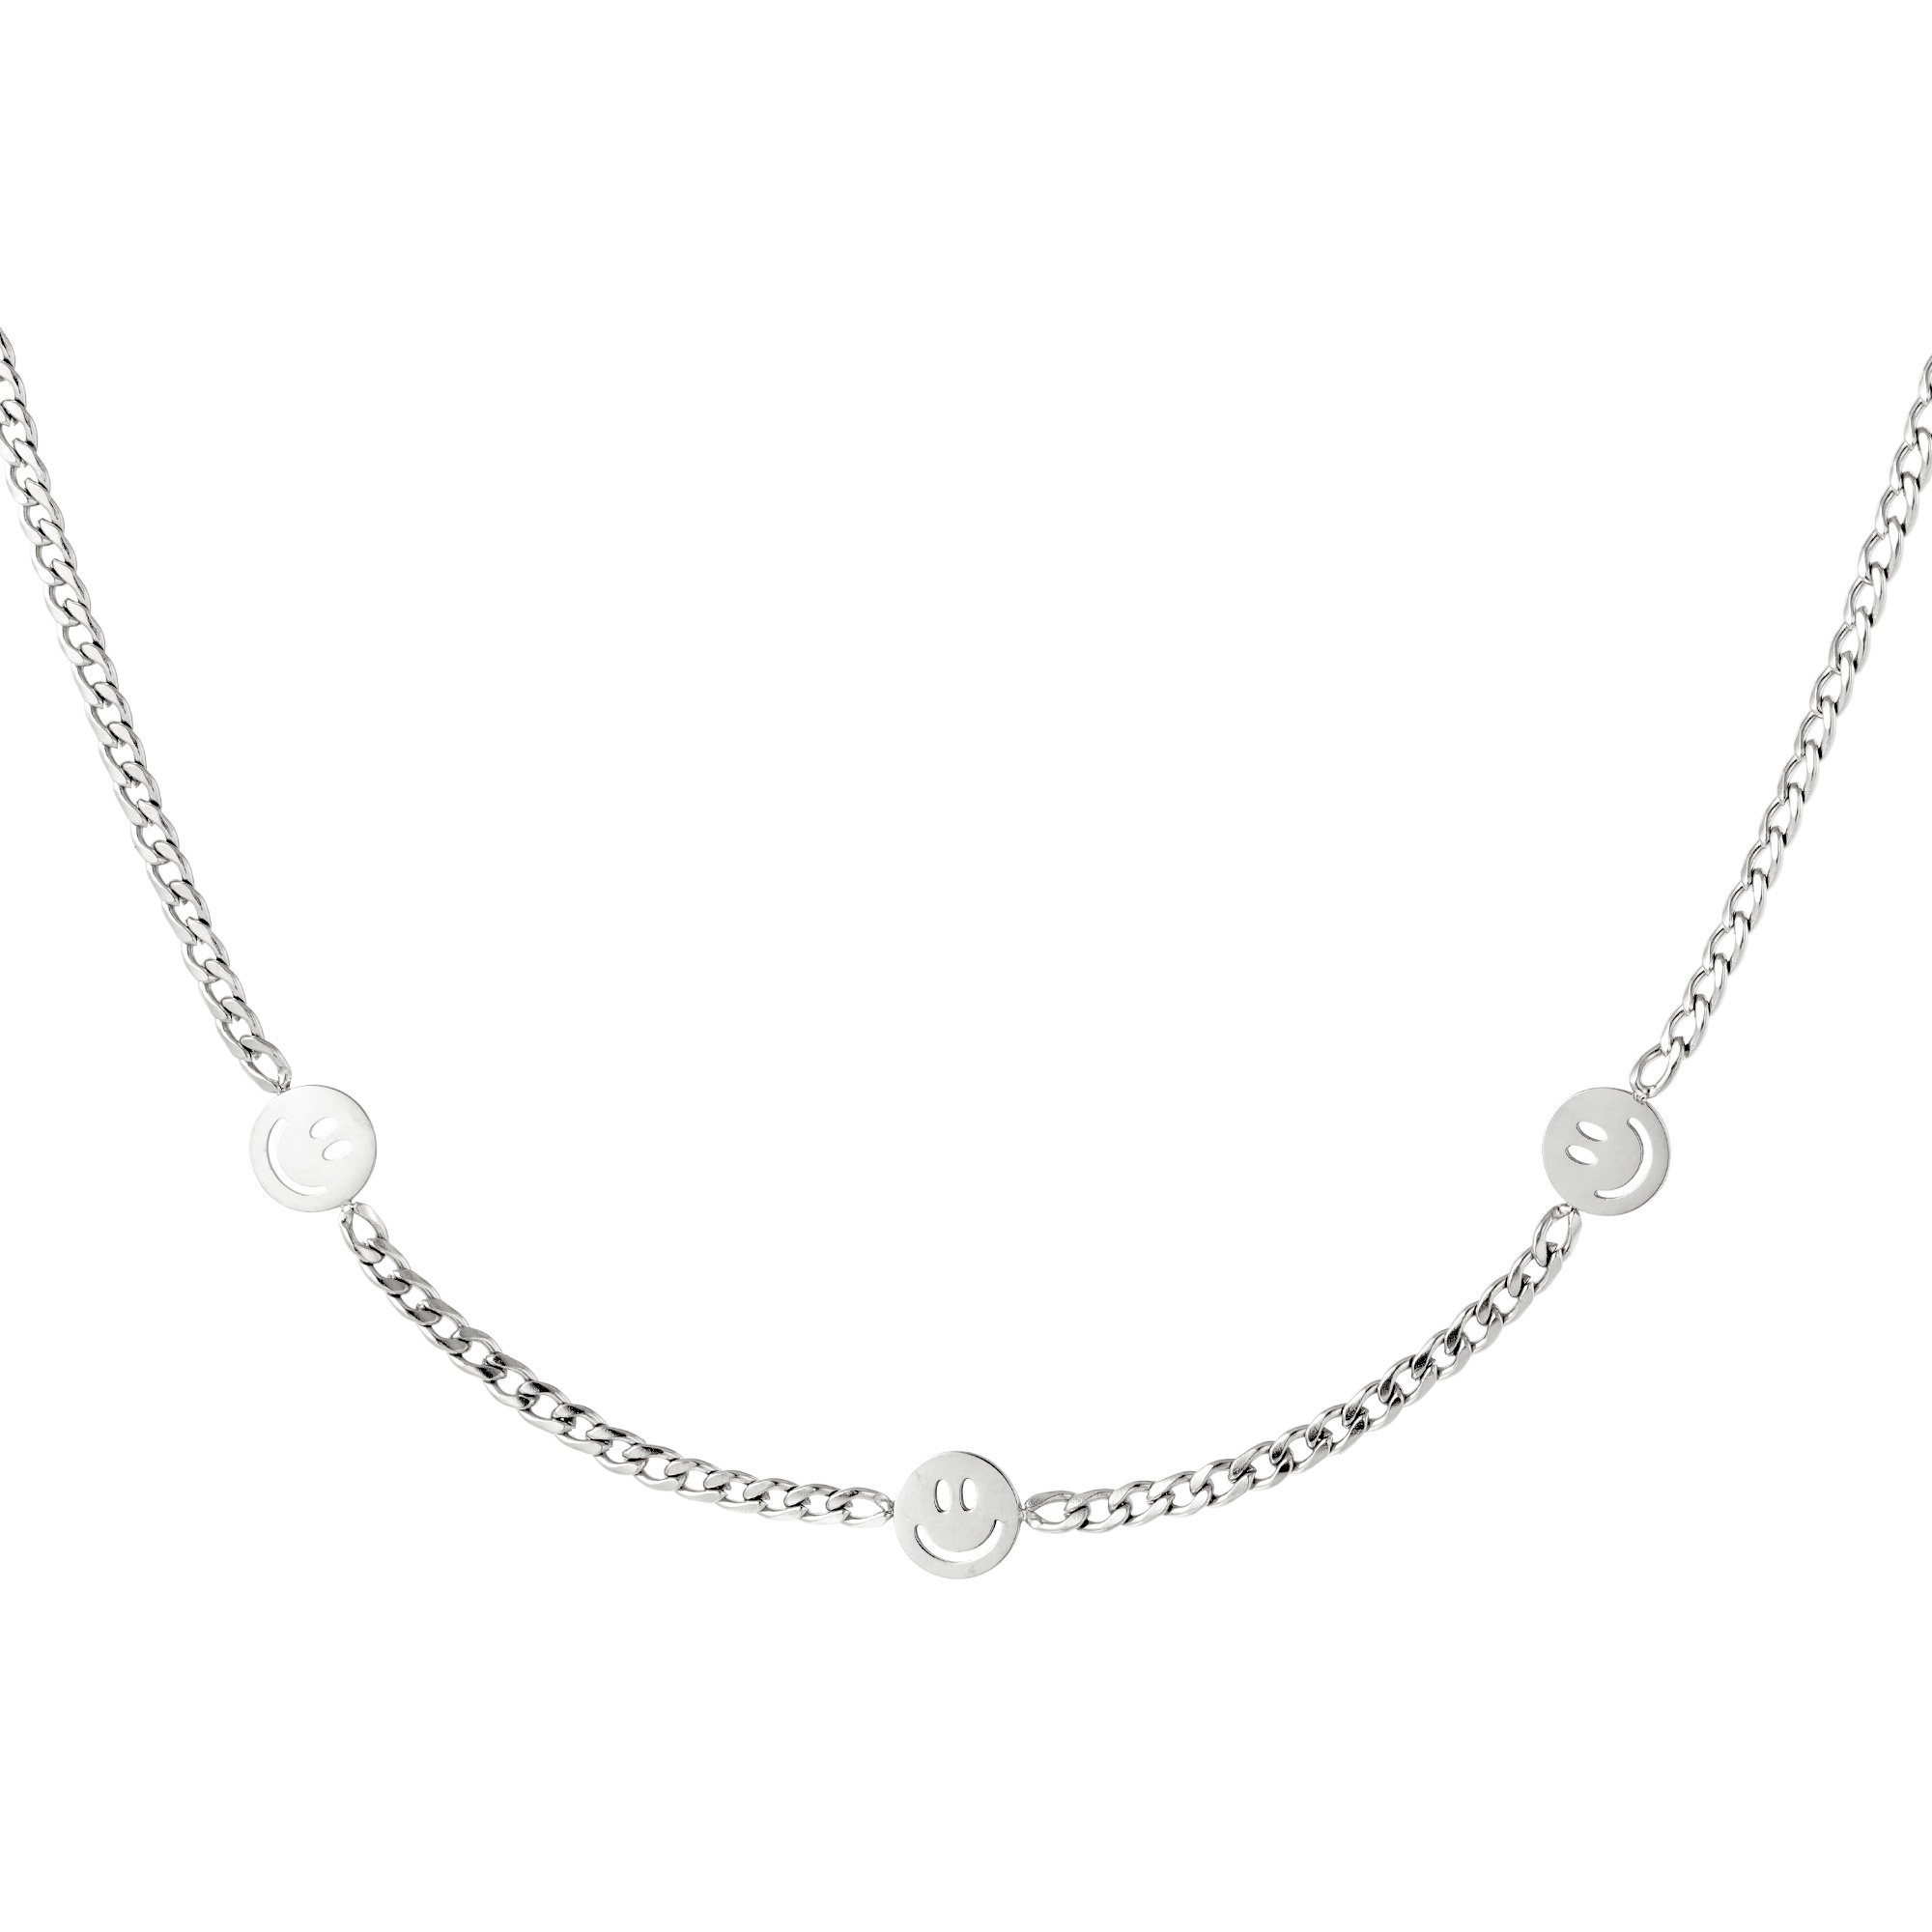 By Moise KETTING 3 SMILEYS ZILVER